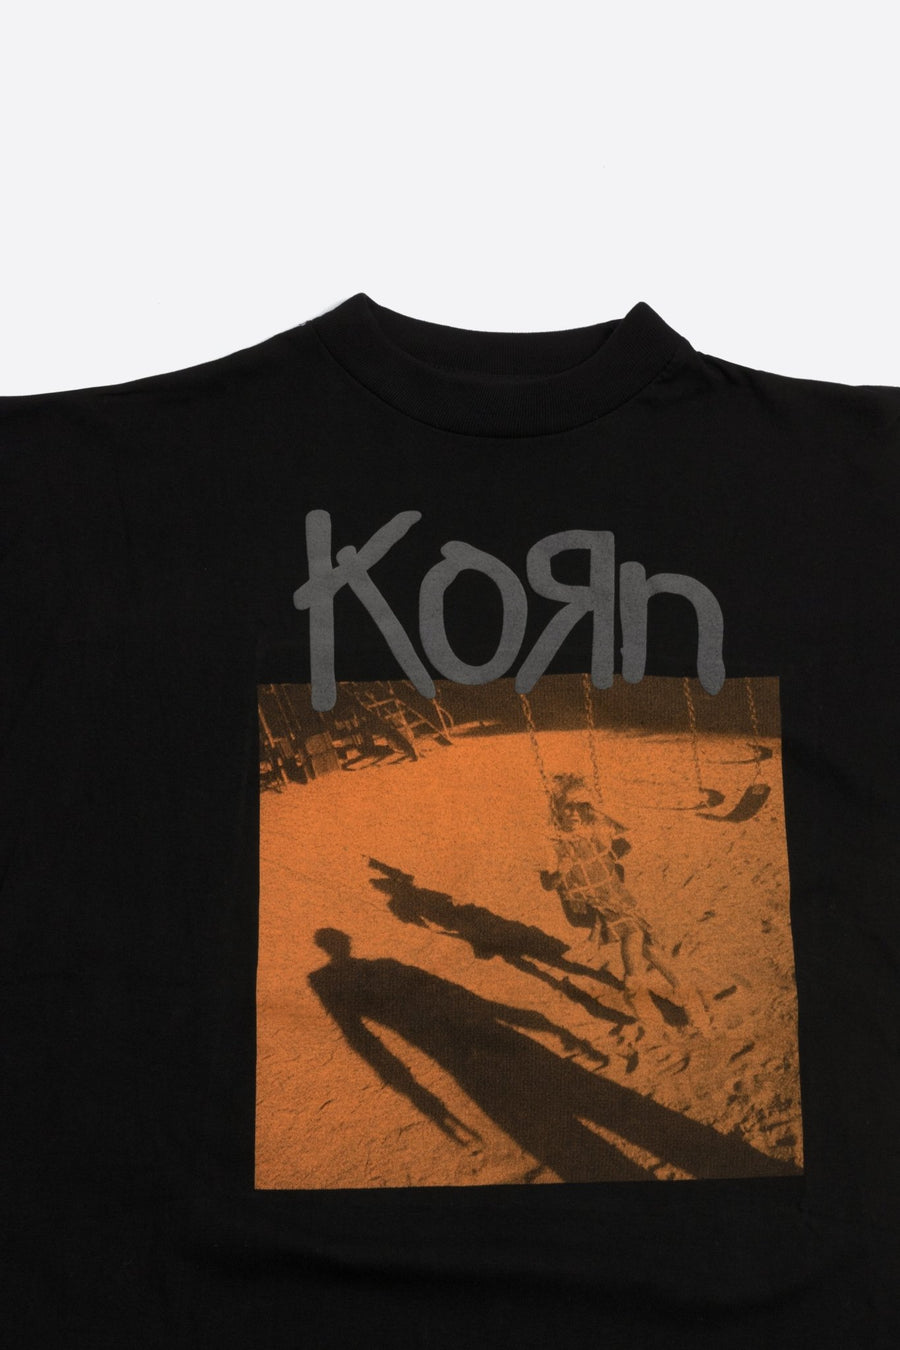 T-shirt Korn Self Titled OG 90's - WASTED PARIS